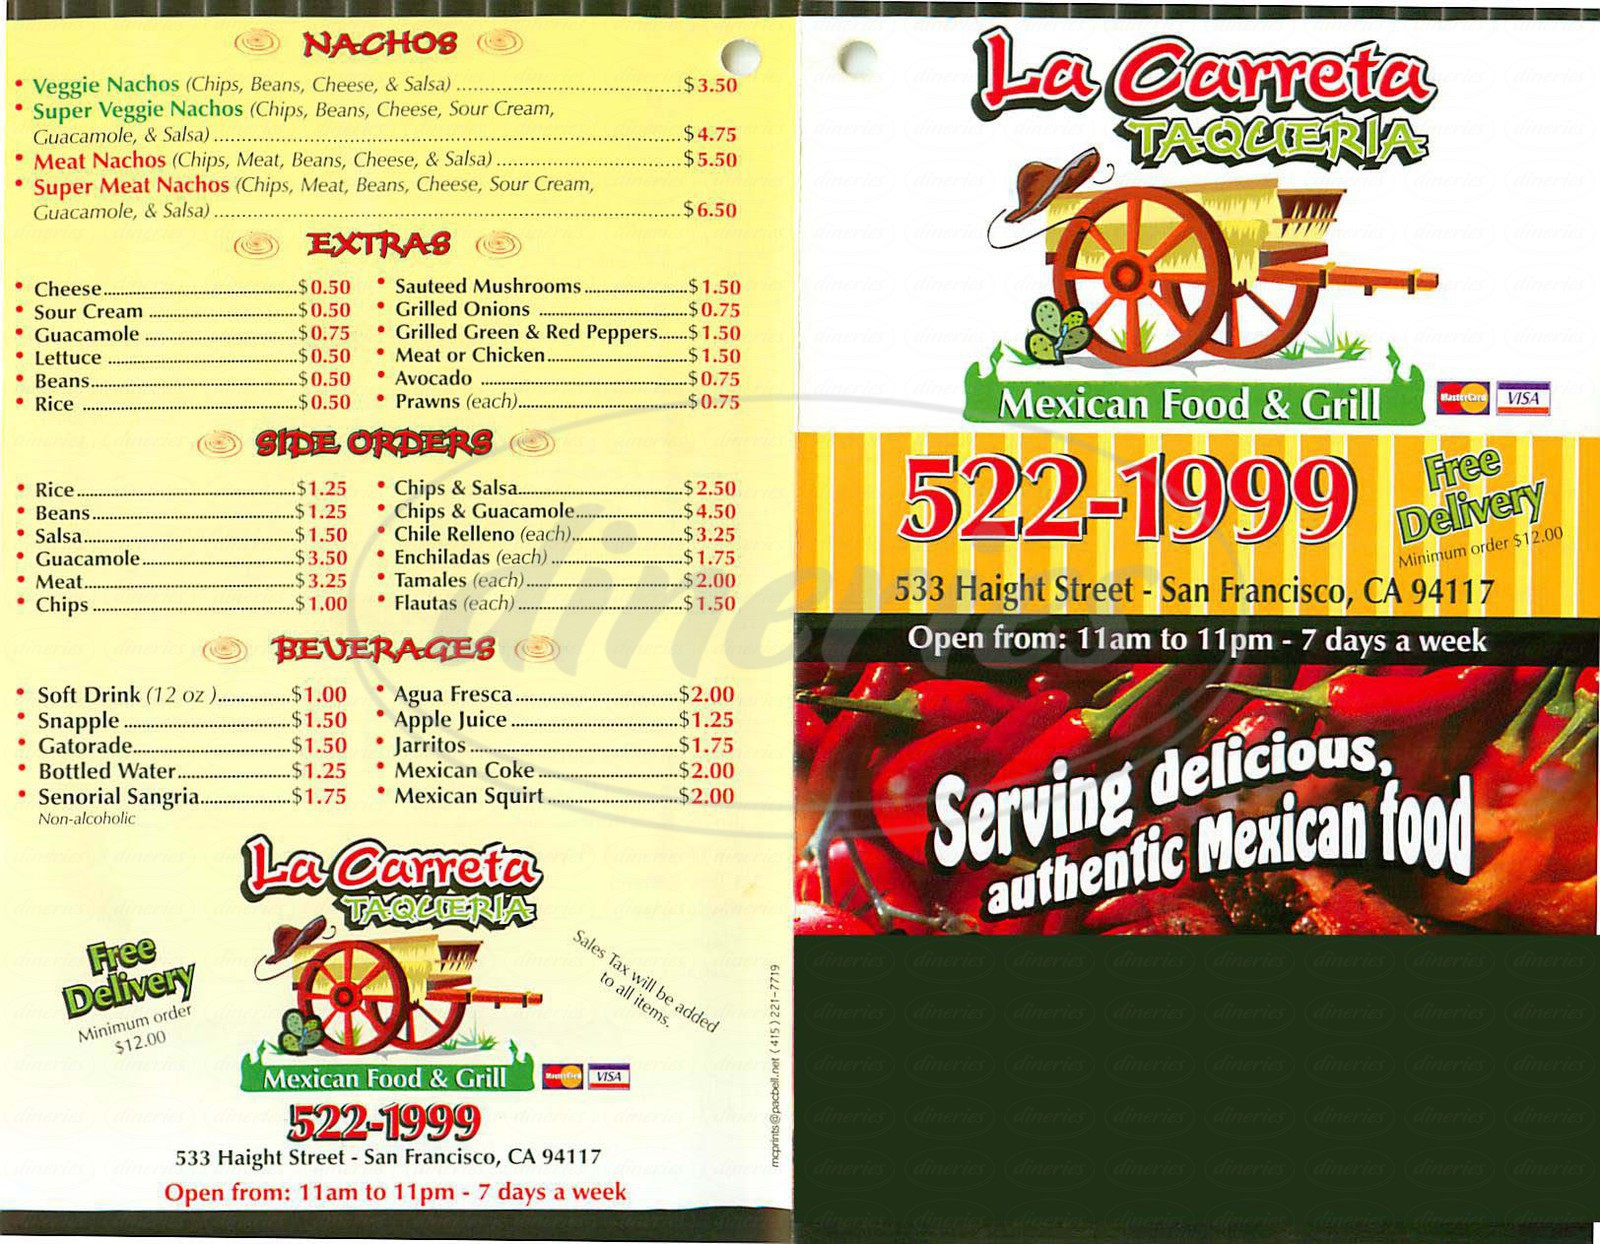 menu for La Carreta Taqueria